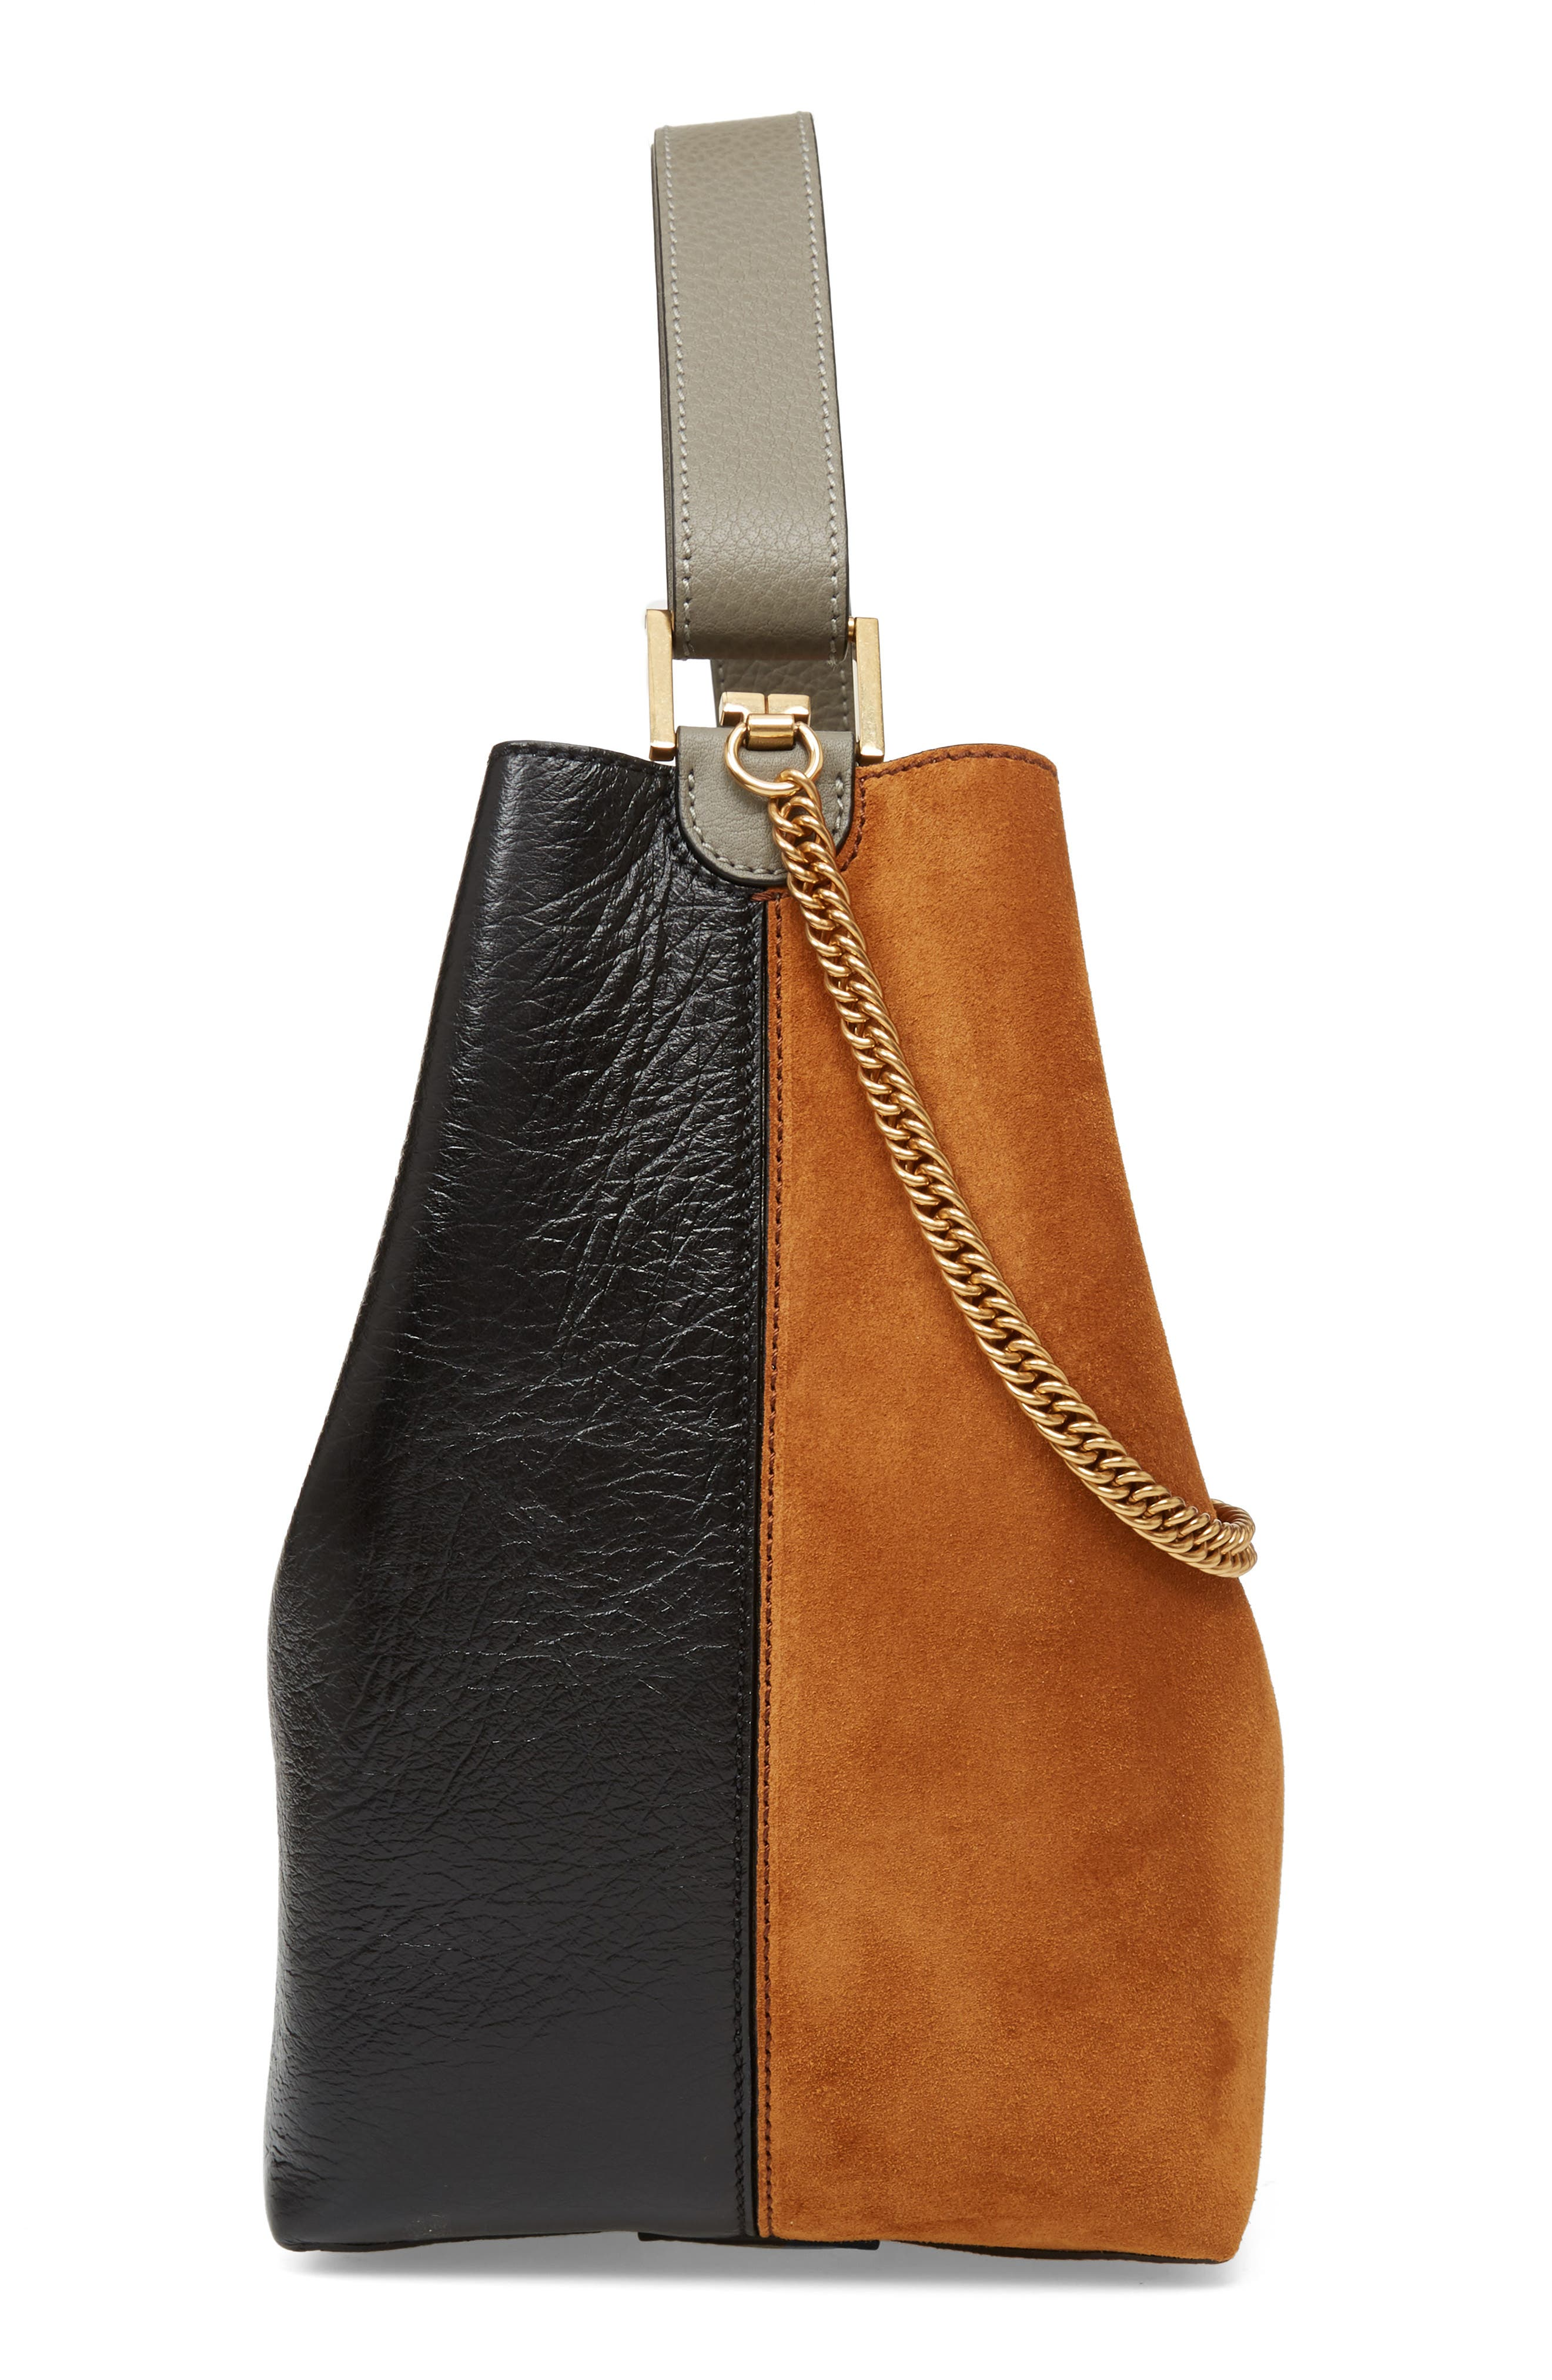 Medium GV Lambskin Bucket Bag,                             Alternate thumbnail 6, color,                             BLACK/ CHESTNUT